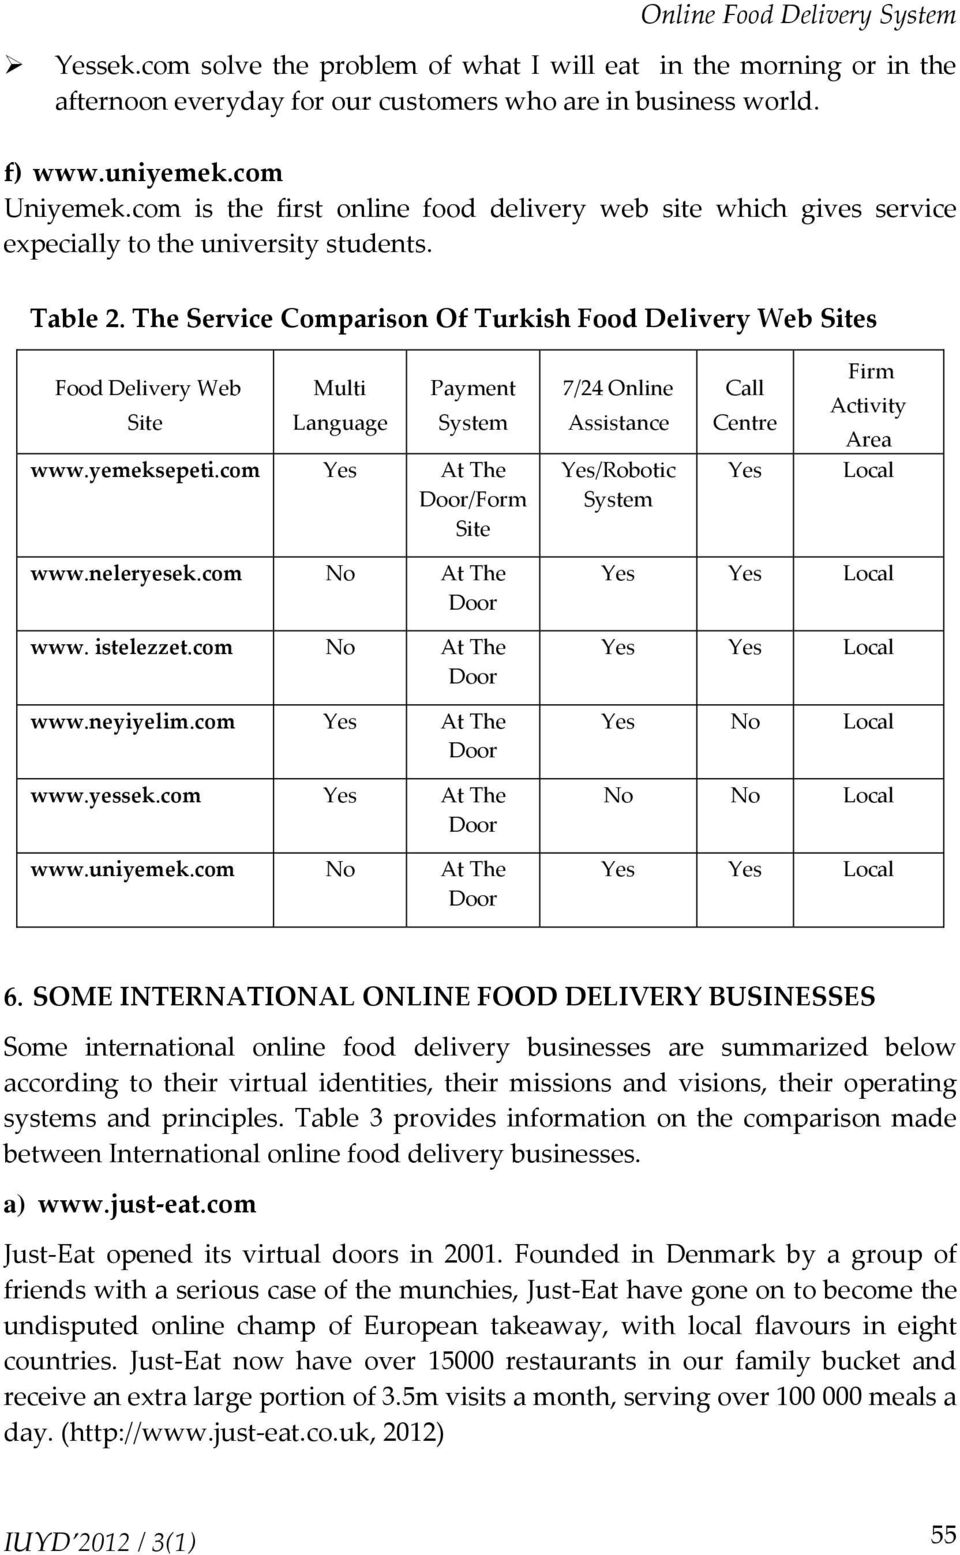 The Service Comparison Of Turkish Food Delivery Web Sites Food Delivery Web Site Multi Language Payment System 7/24 Online Assistance Call Centre Firm Activity Area www.yemeksepeti.